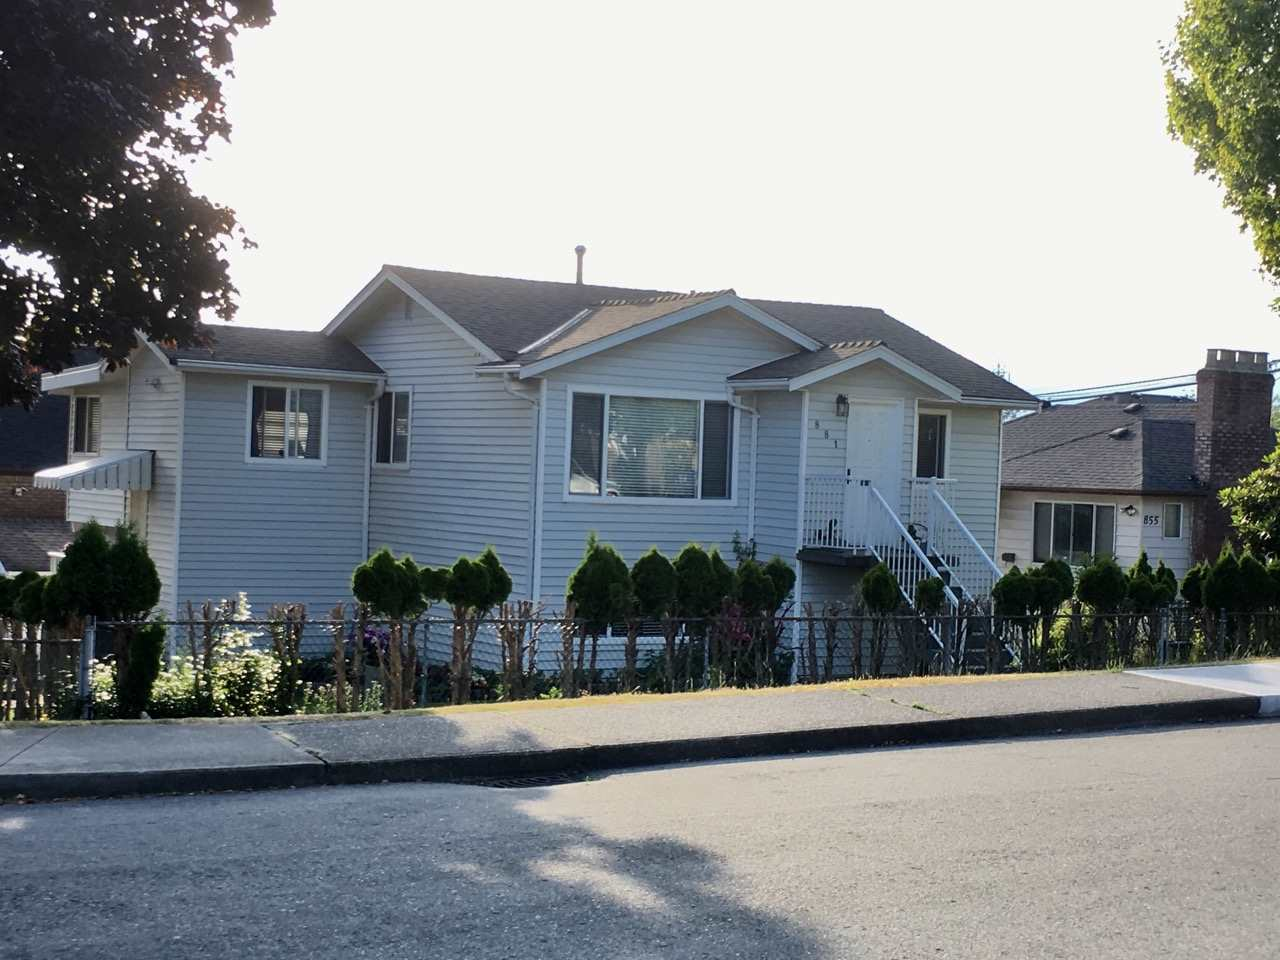 Investment opportunity alert! Corner lot 6160 Sq. Ft. Remodeled two level home, 2 bedroom up & 1 down. Family Room/ Solarium with top quality cedar finishing. House raised in 1971. House added onto in 1984. Renovate now or hold and build later. This home sits on one of the best and quiet streets in the heights. Close to transit, Brentwood mall and supermarket.